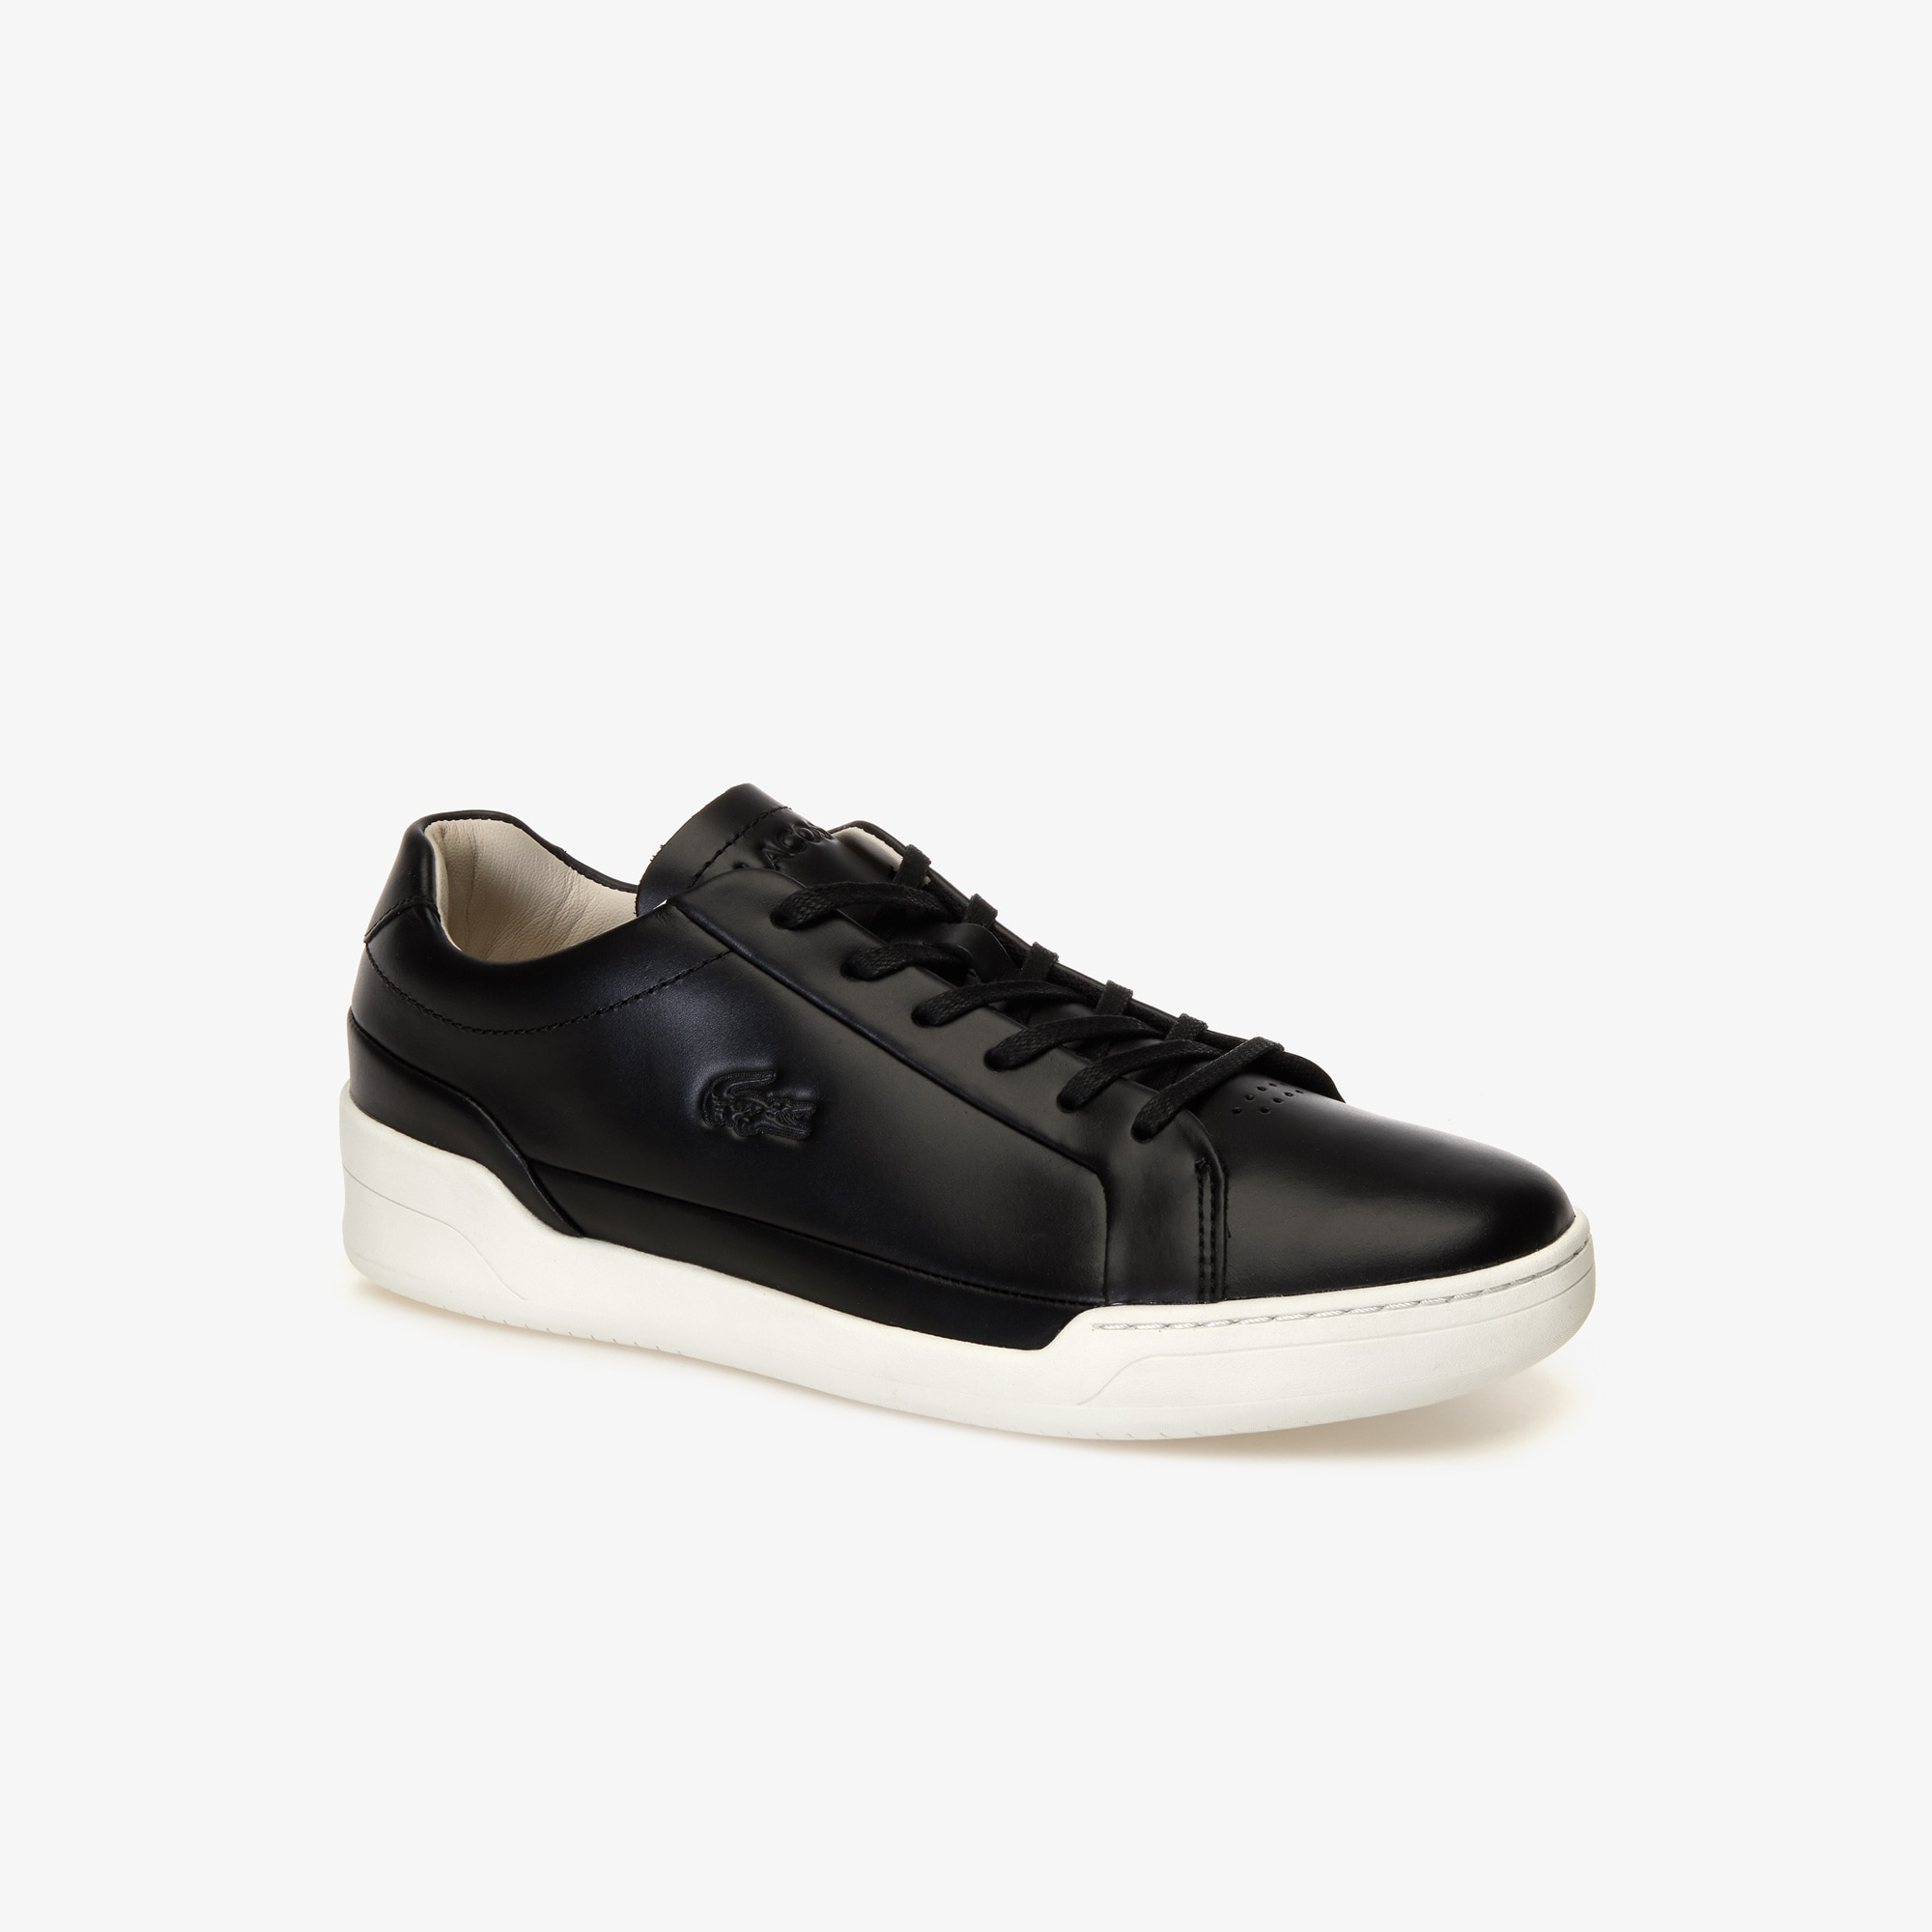 2effe7970eed Lacoste shoes for men  Sneakers